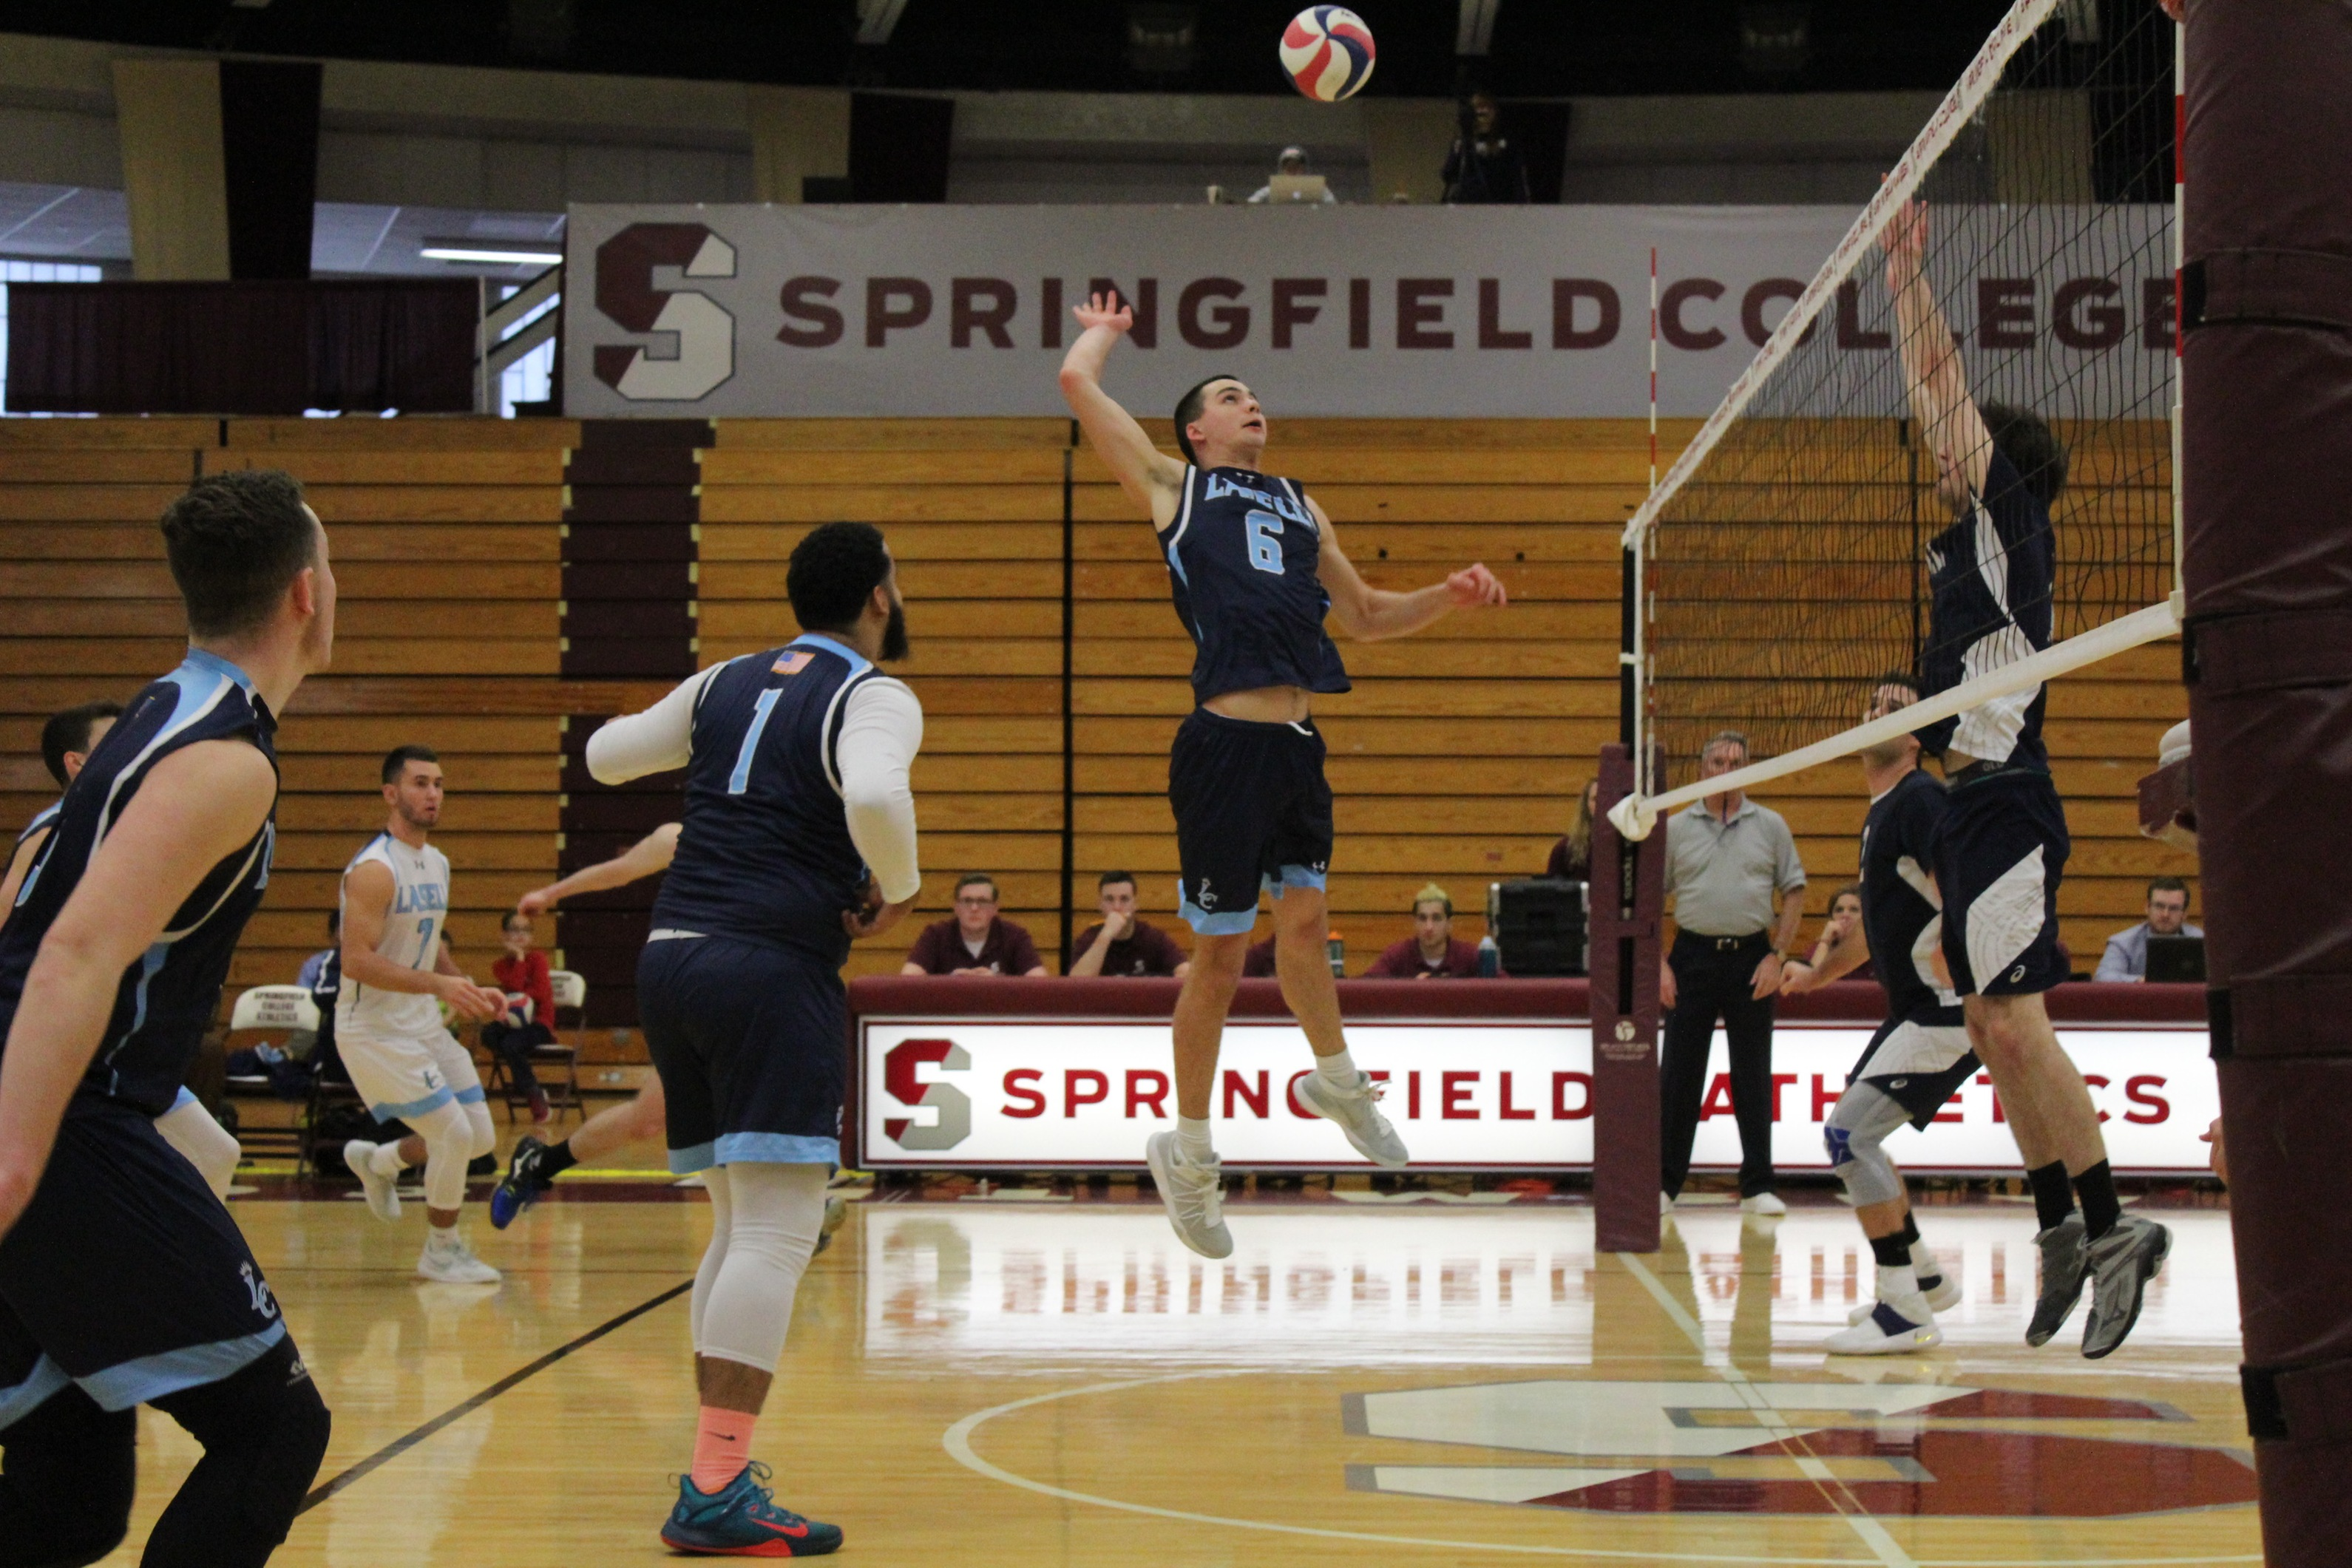 Lasell Men's Volleyball upended by Rivier